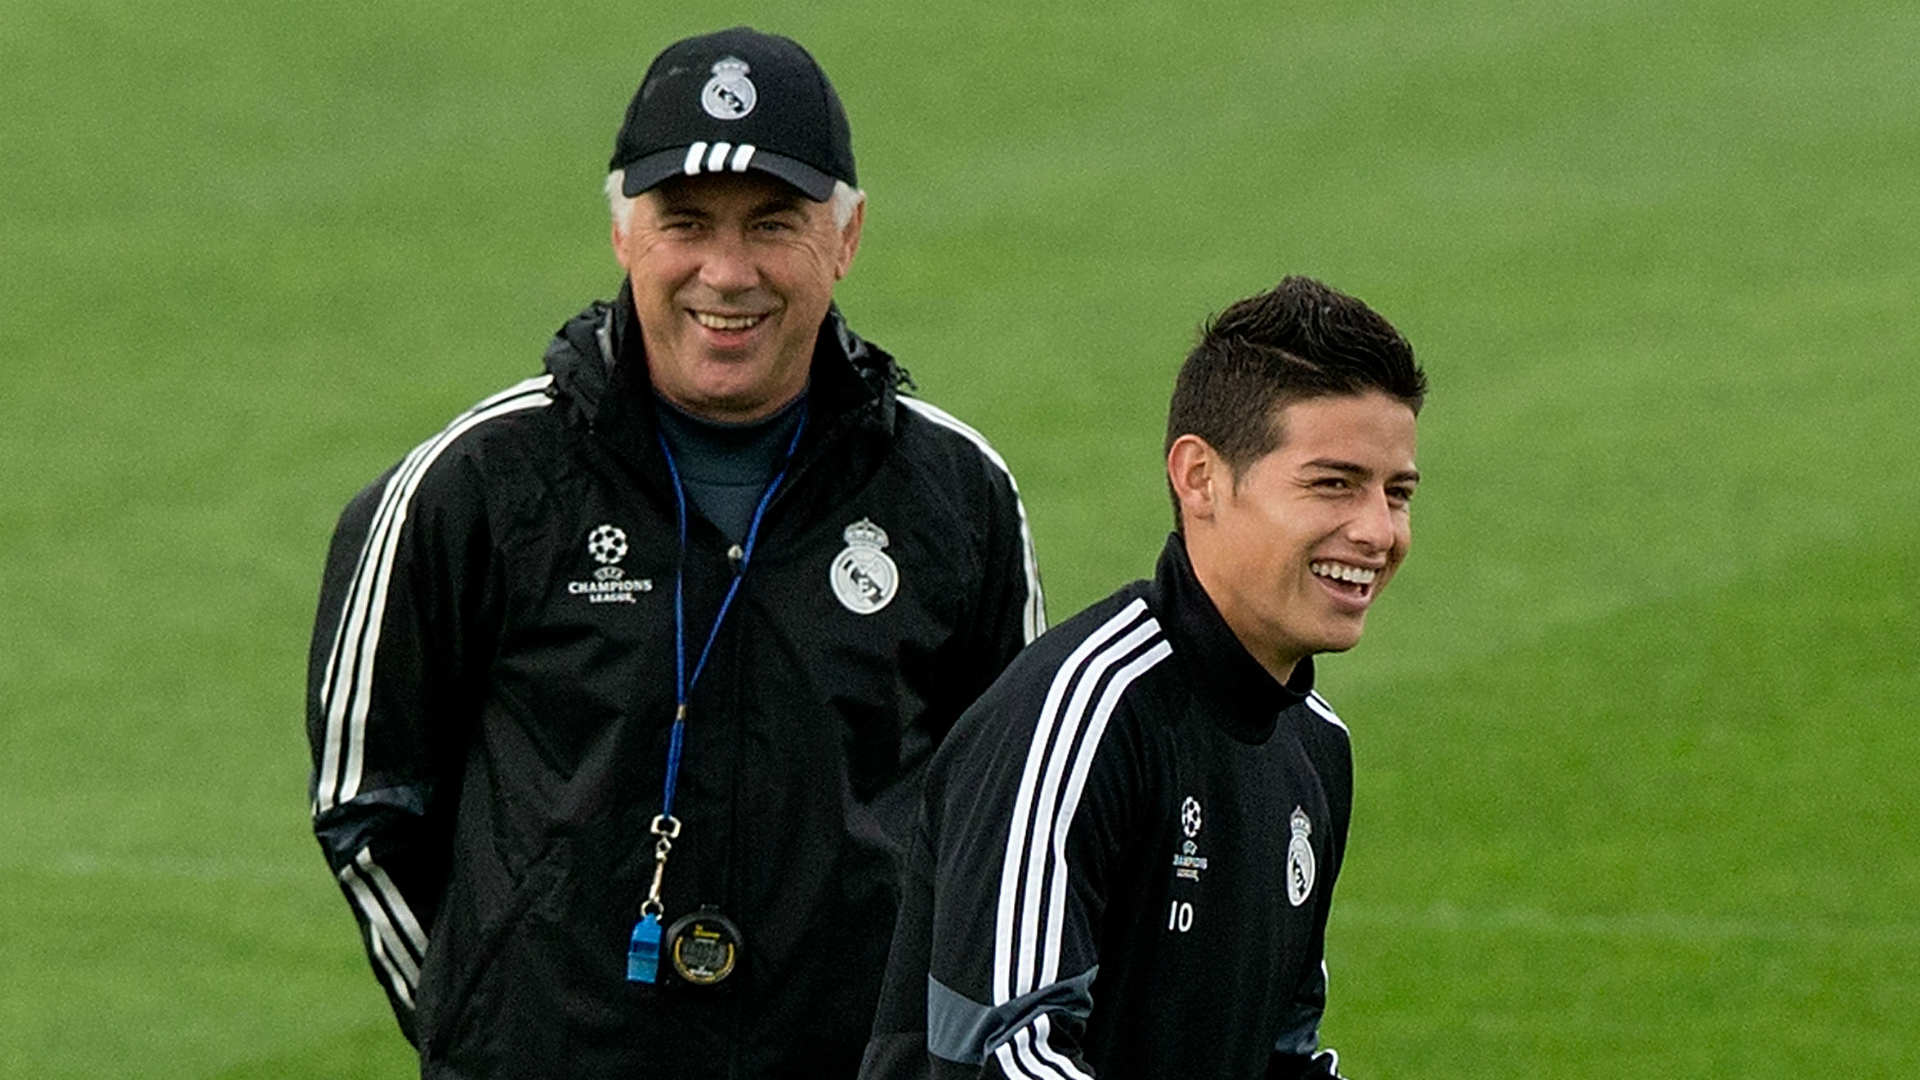 Ancelotti expects James negotiations with Real Madrid to take 'a very long time'